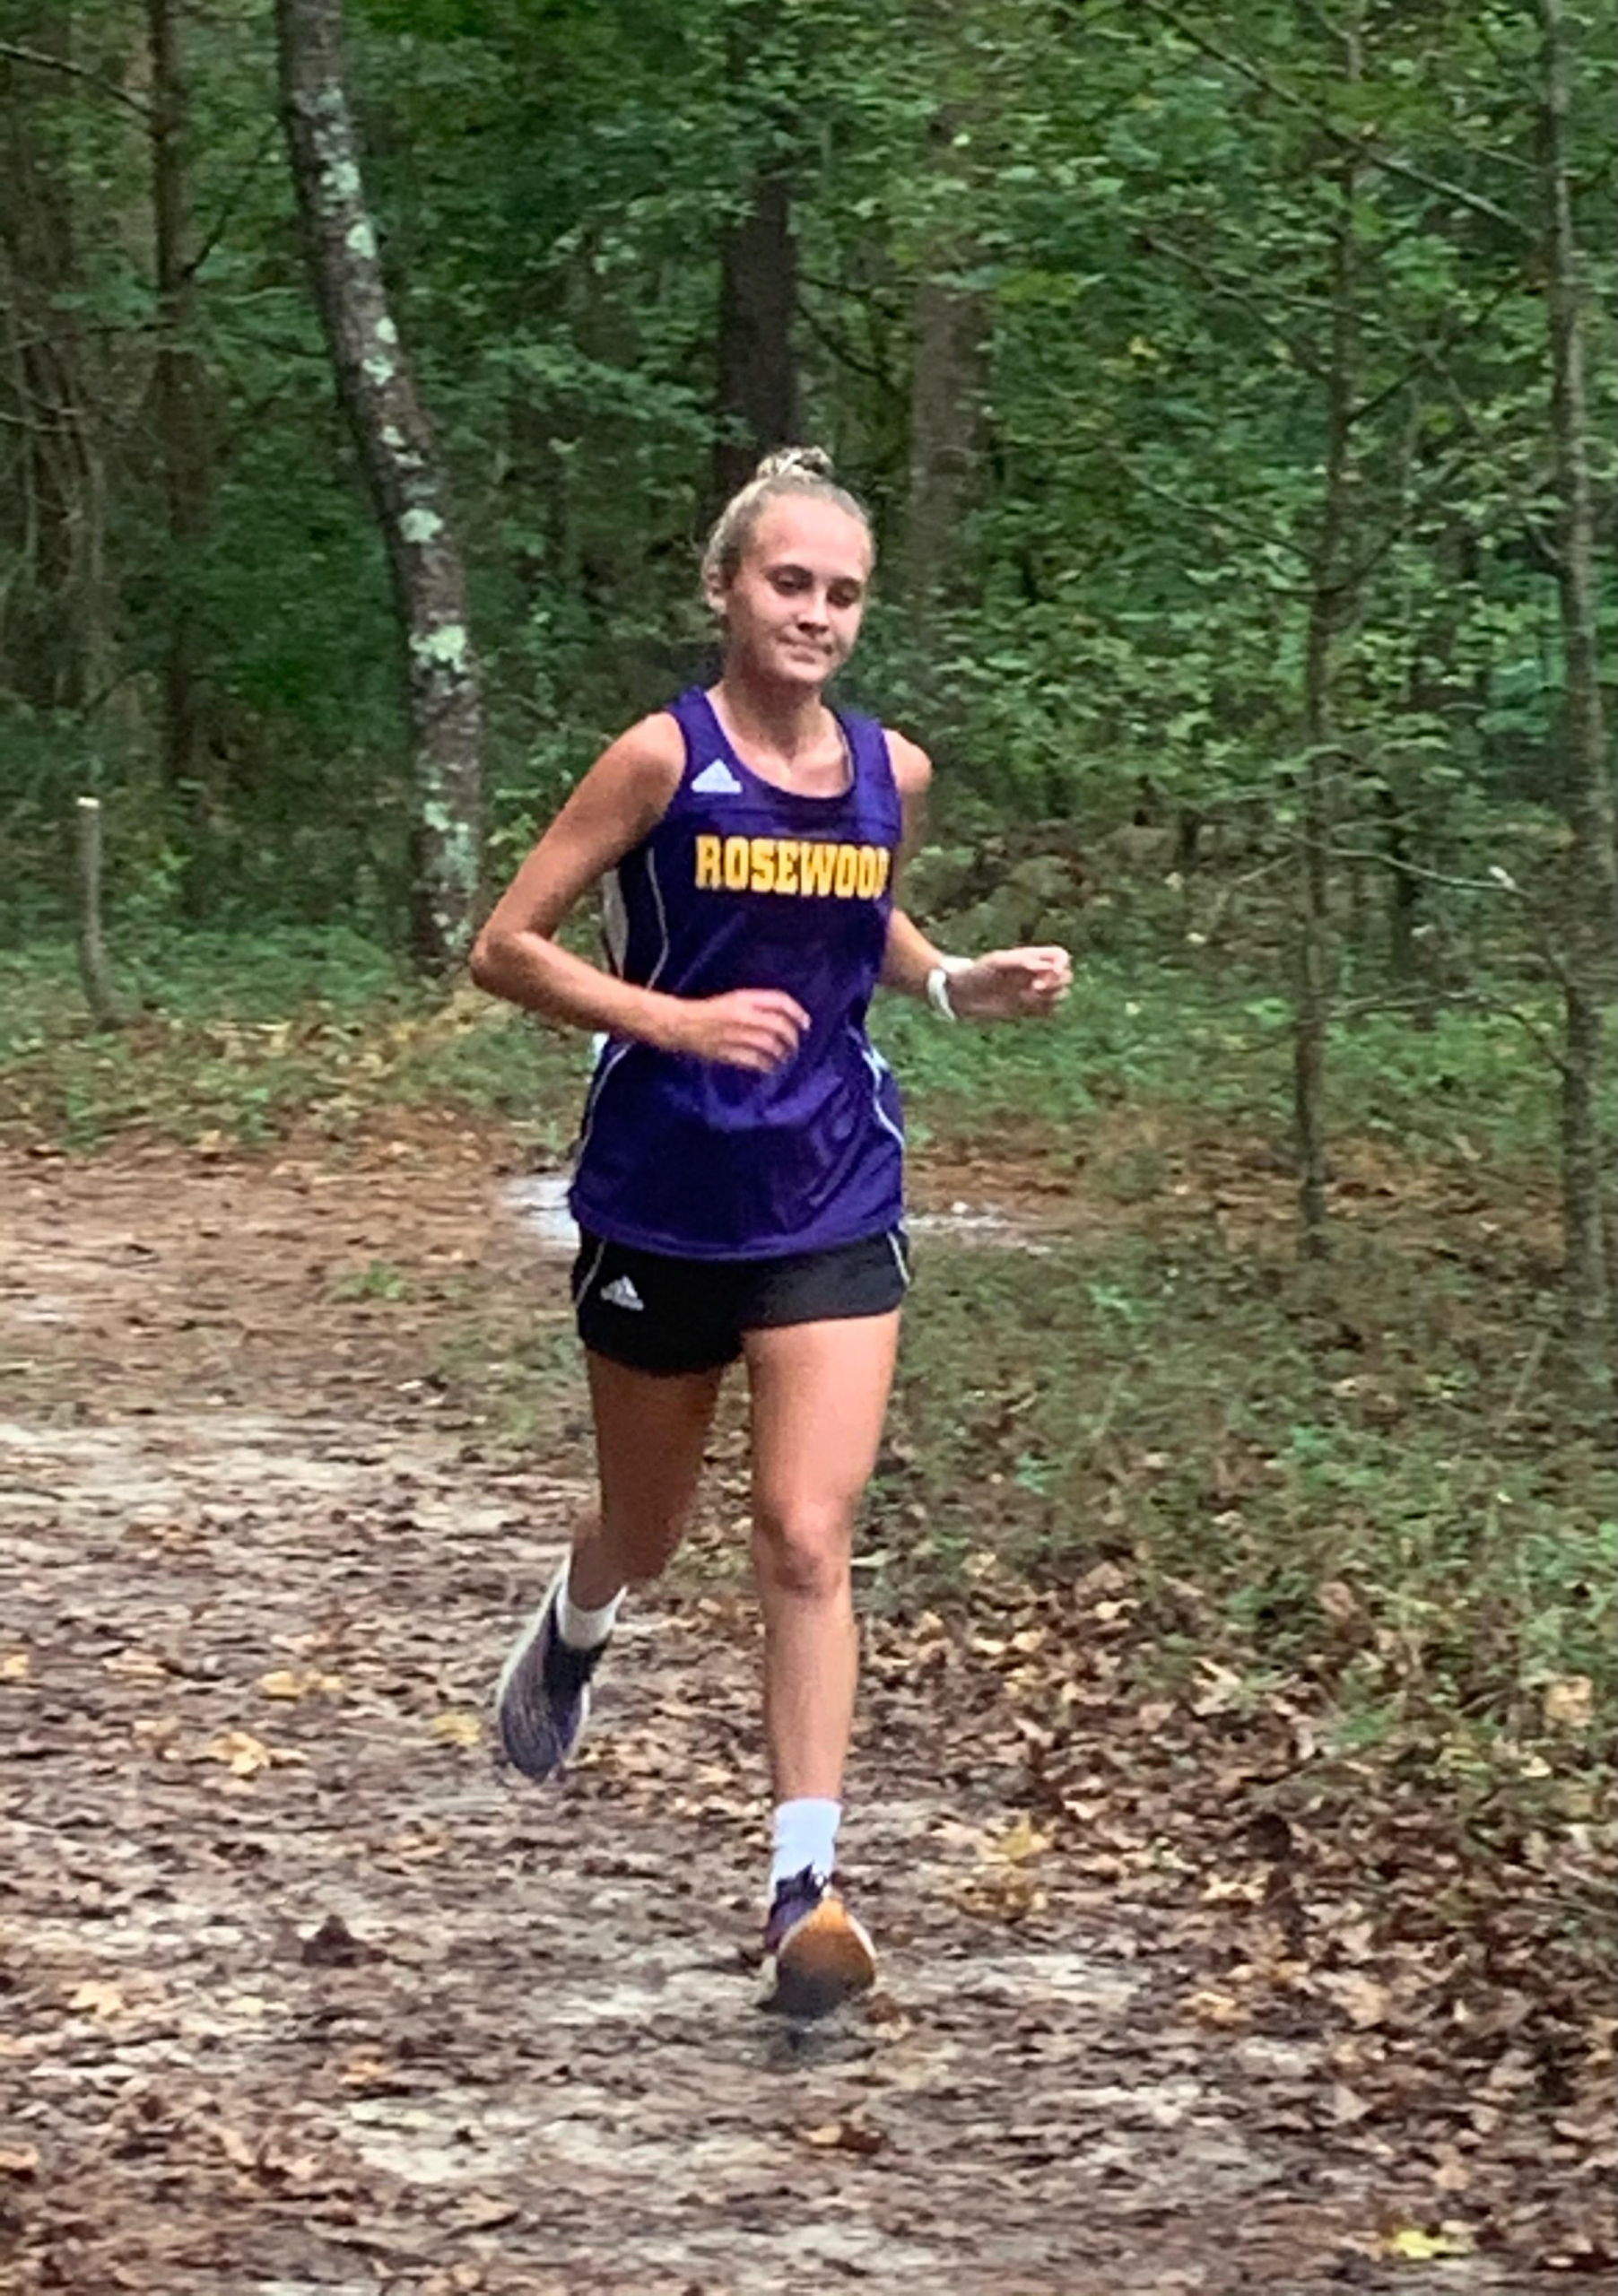 Cross Country: Amy Paces Rosewood Girls